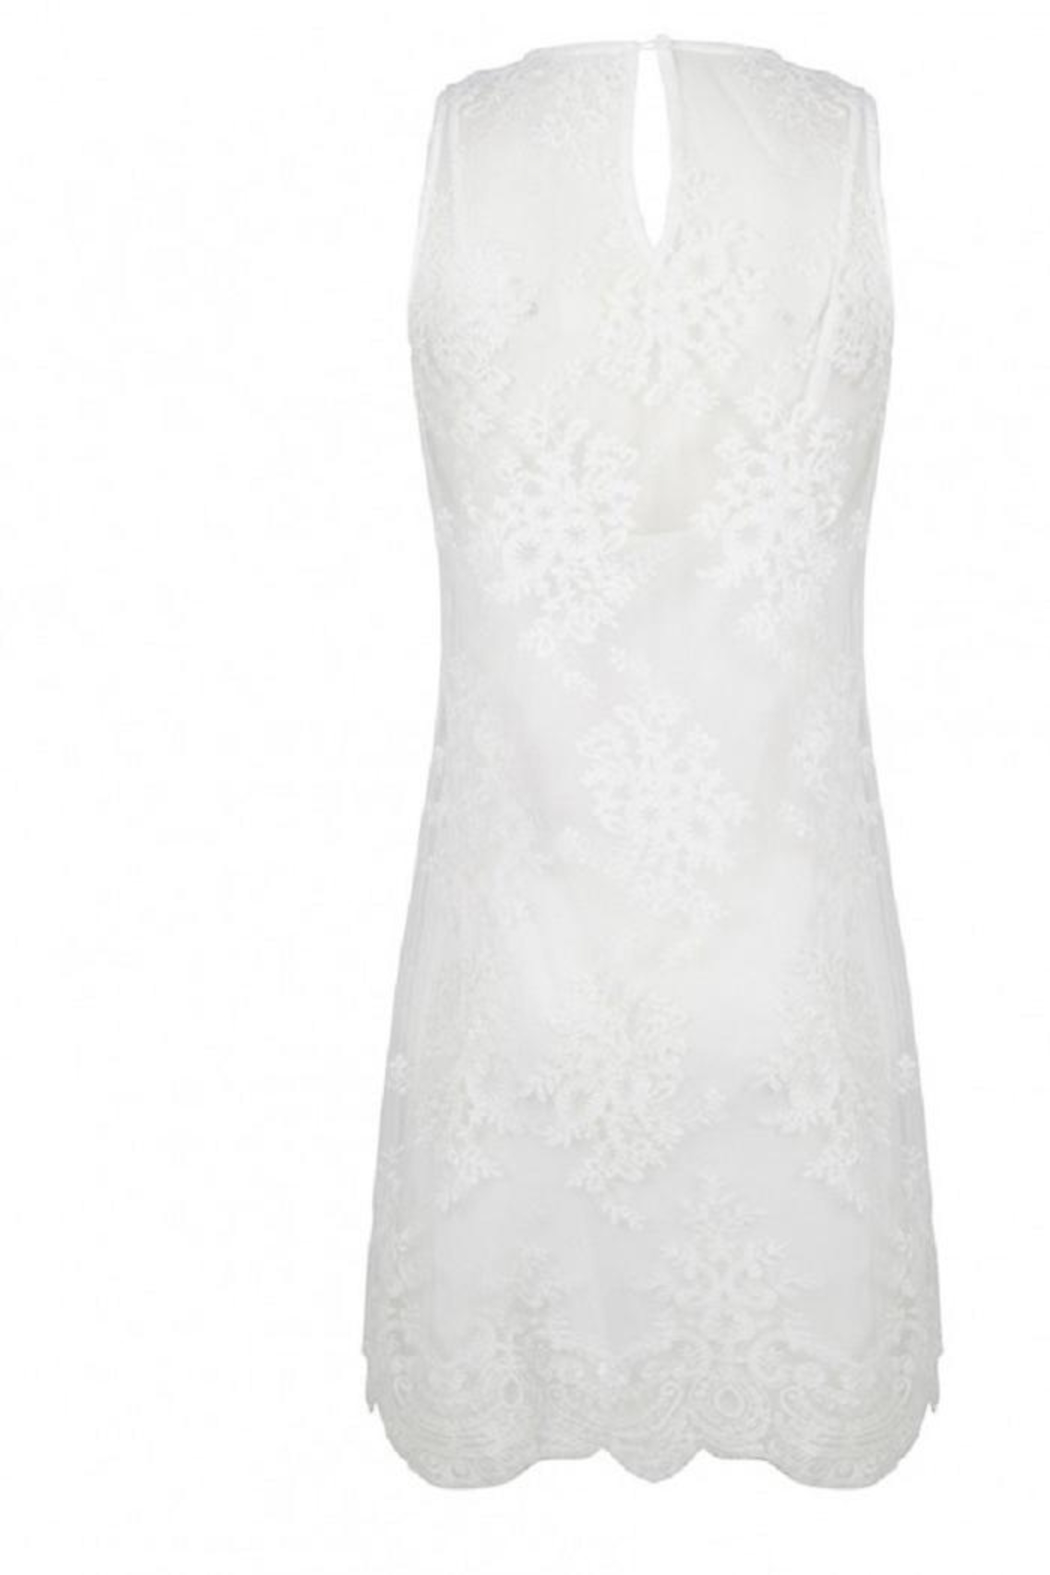 EsQualo Embroidery Mesh Dress - Front Full Image